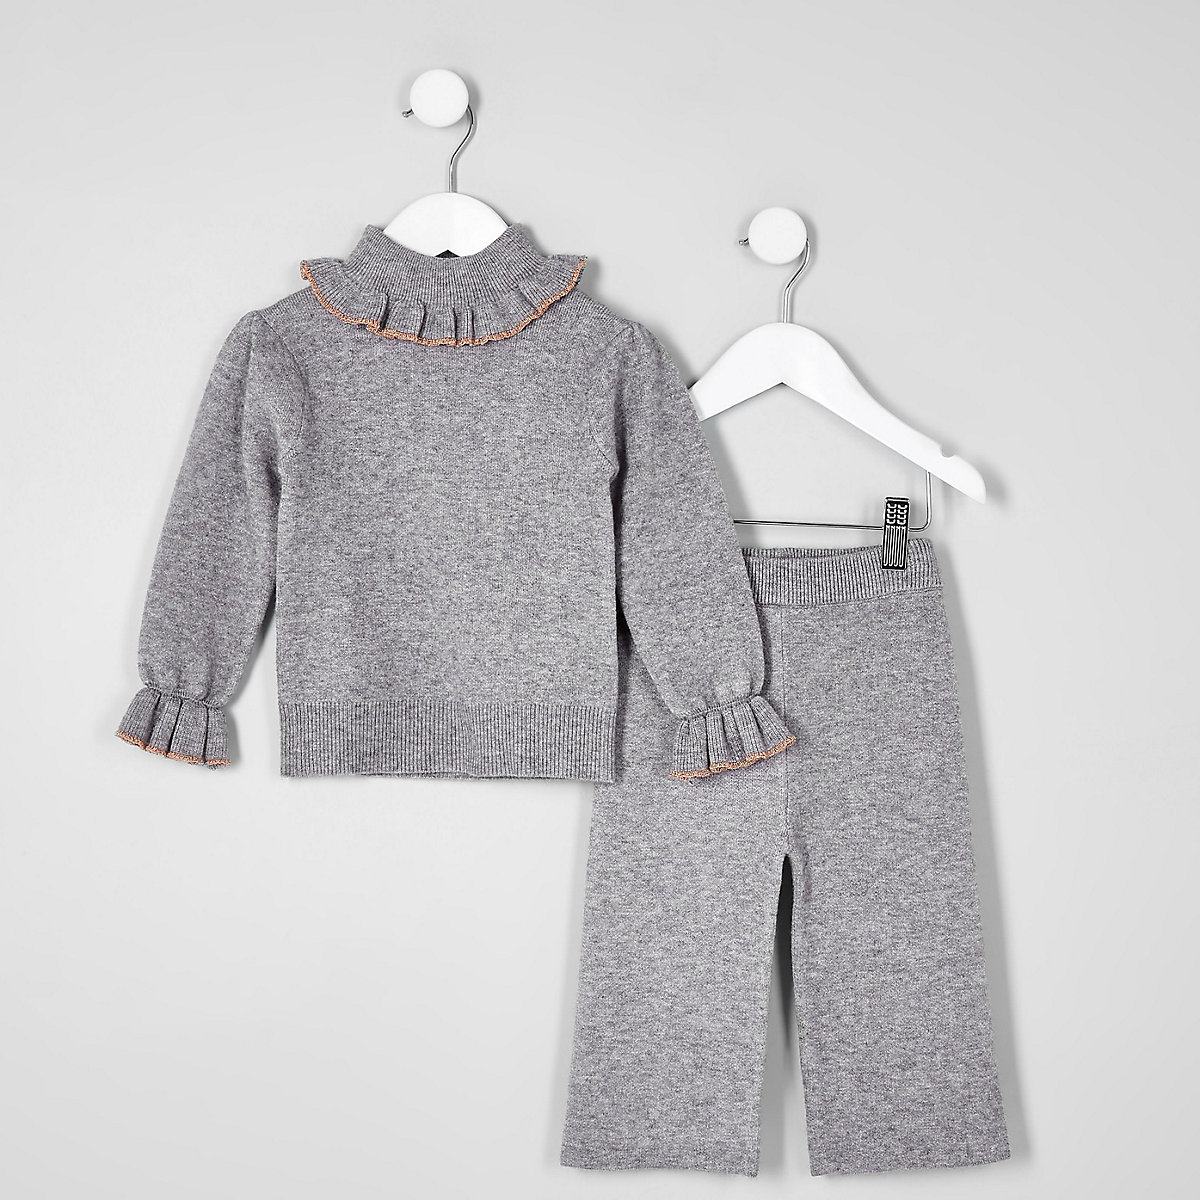 Mini girls grey knit frill roll neck outfit